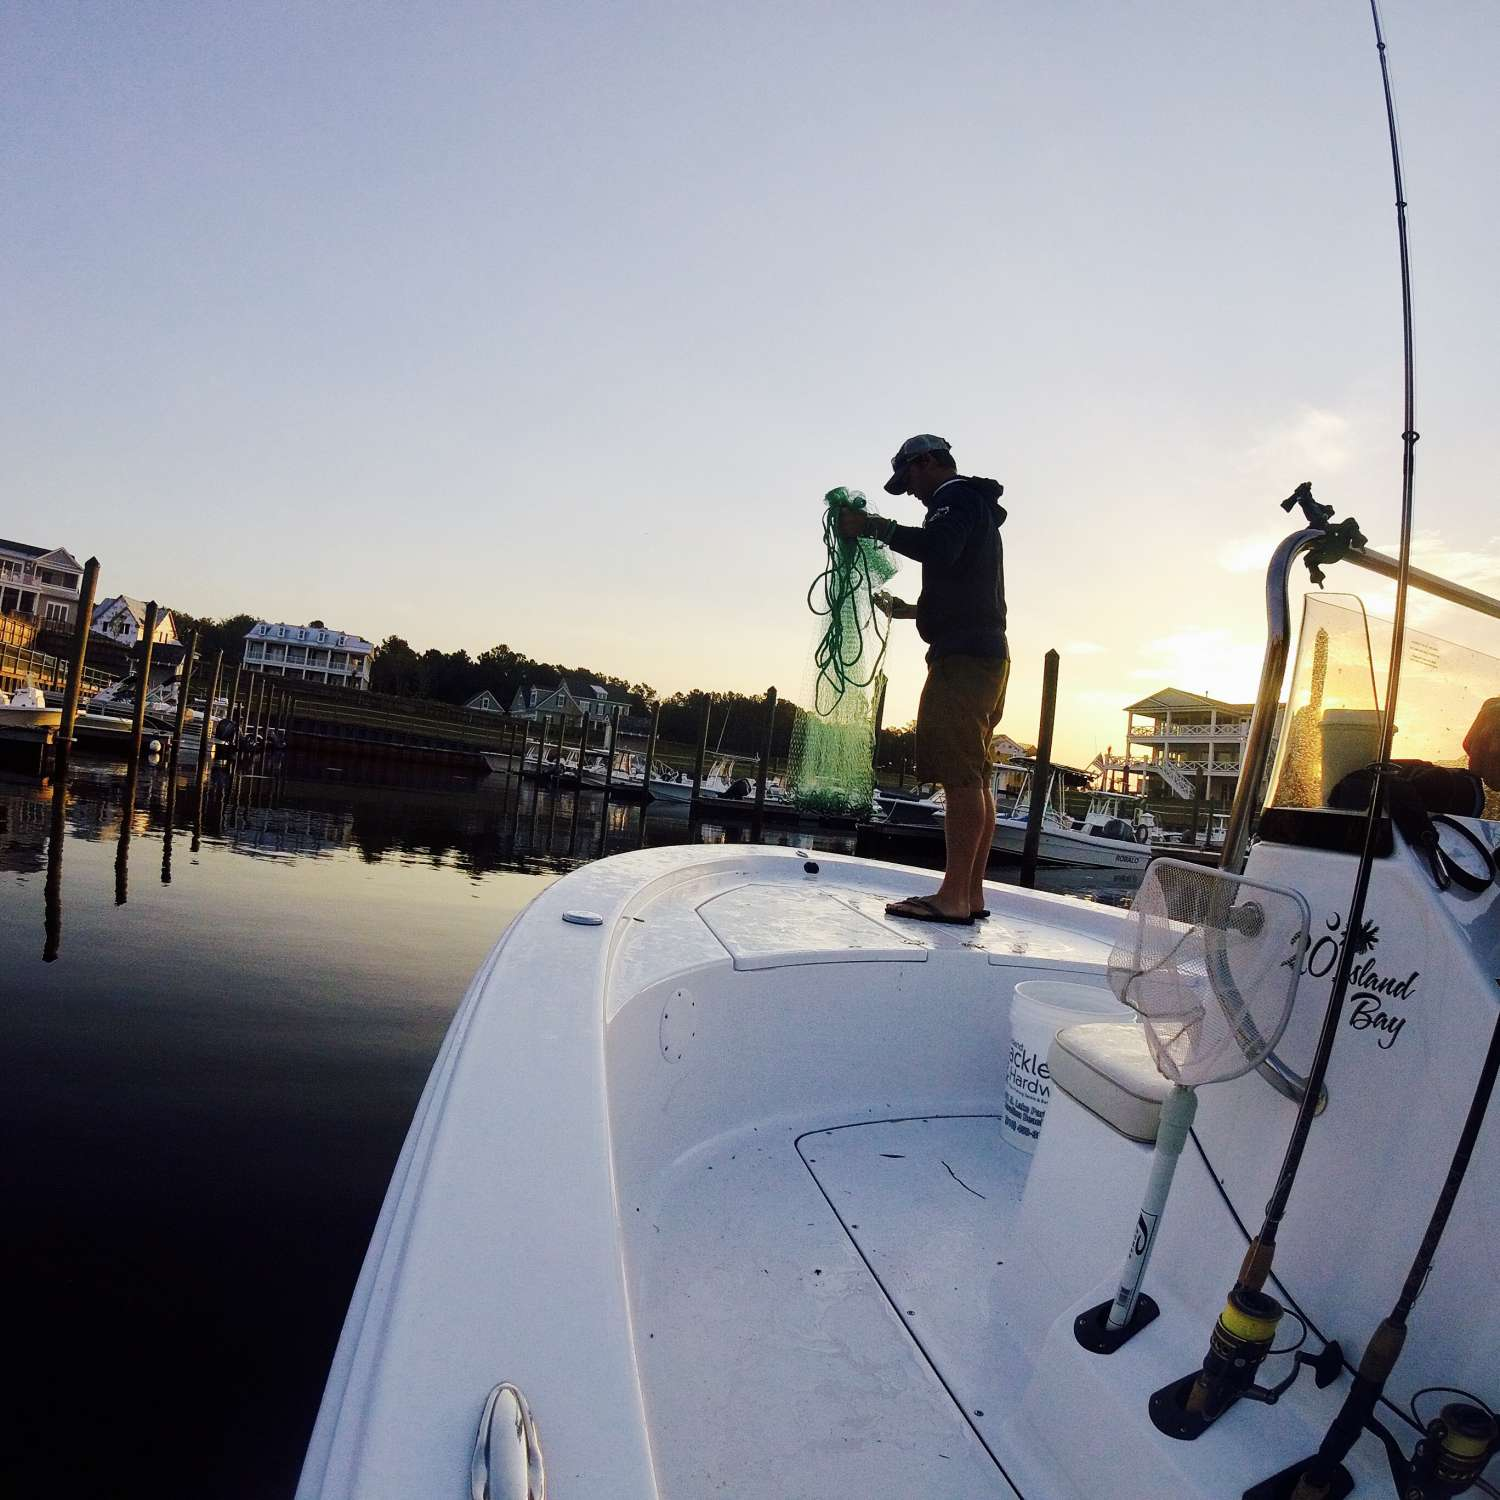 Title: Early Morning Bait Grind - On board their Sportsman Island Bay 20 Bay Boat - Location: Wilmington, North Carolina. Participating in the Photo Contest #SportsmanJune2017